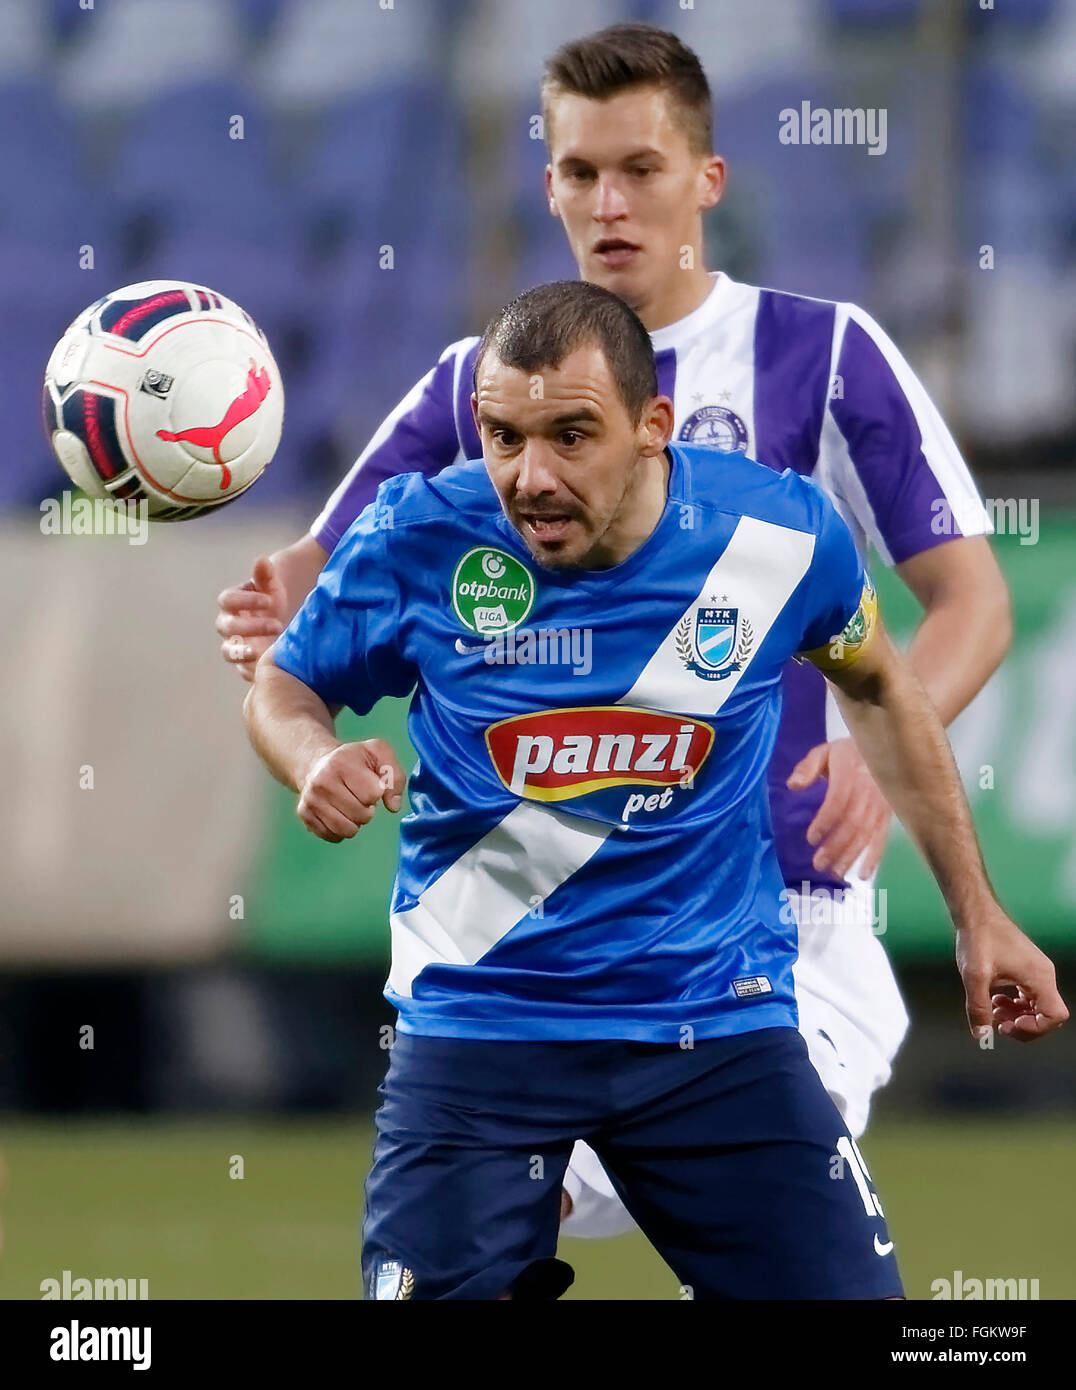 Budapest, Hungary. 20th February,  2016. Jozsef Windecker of Ujpest (r) and Jozsef Kanta of MTK watch the ball during - Stock Image